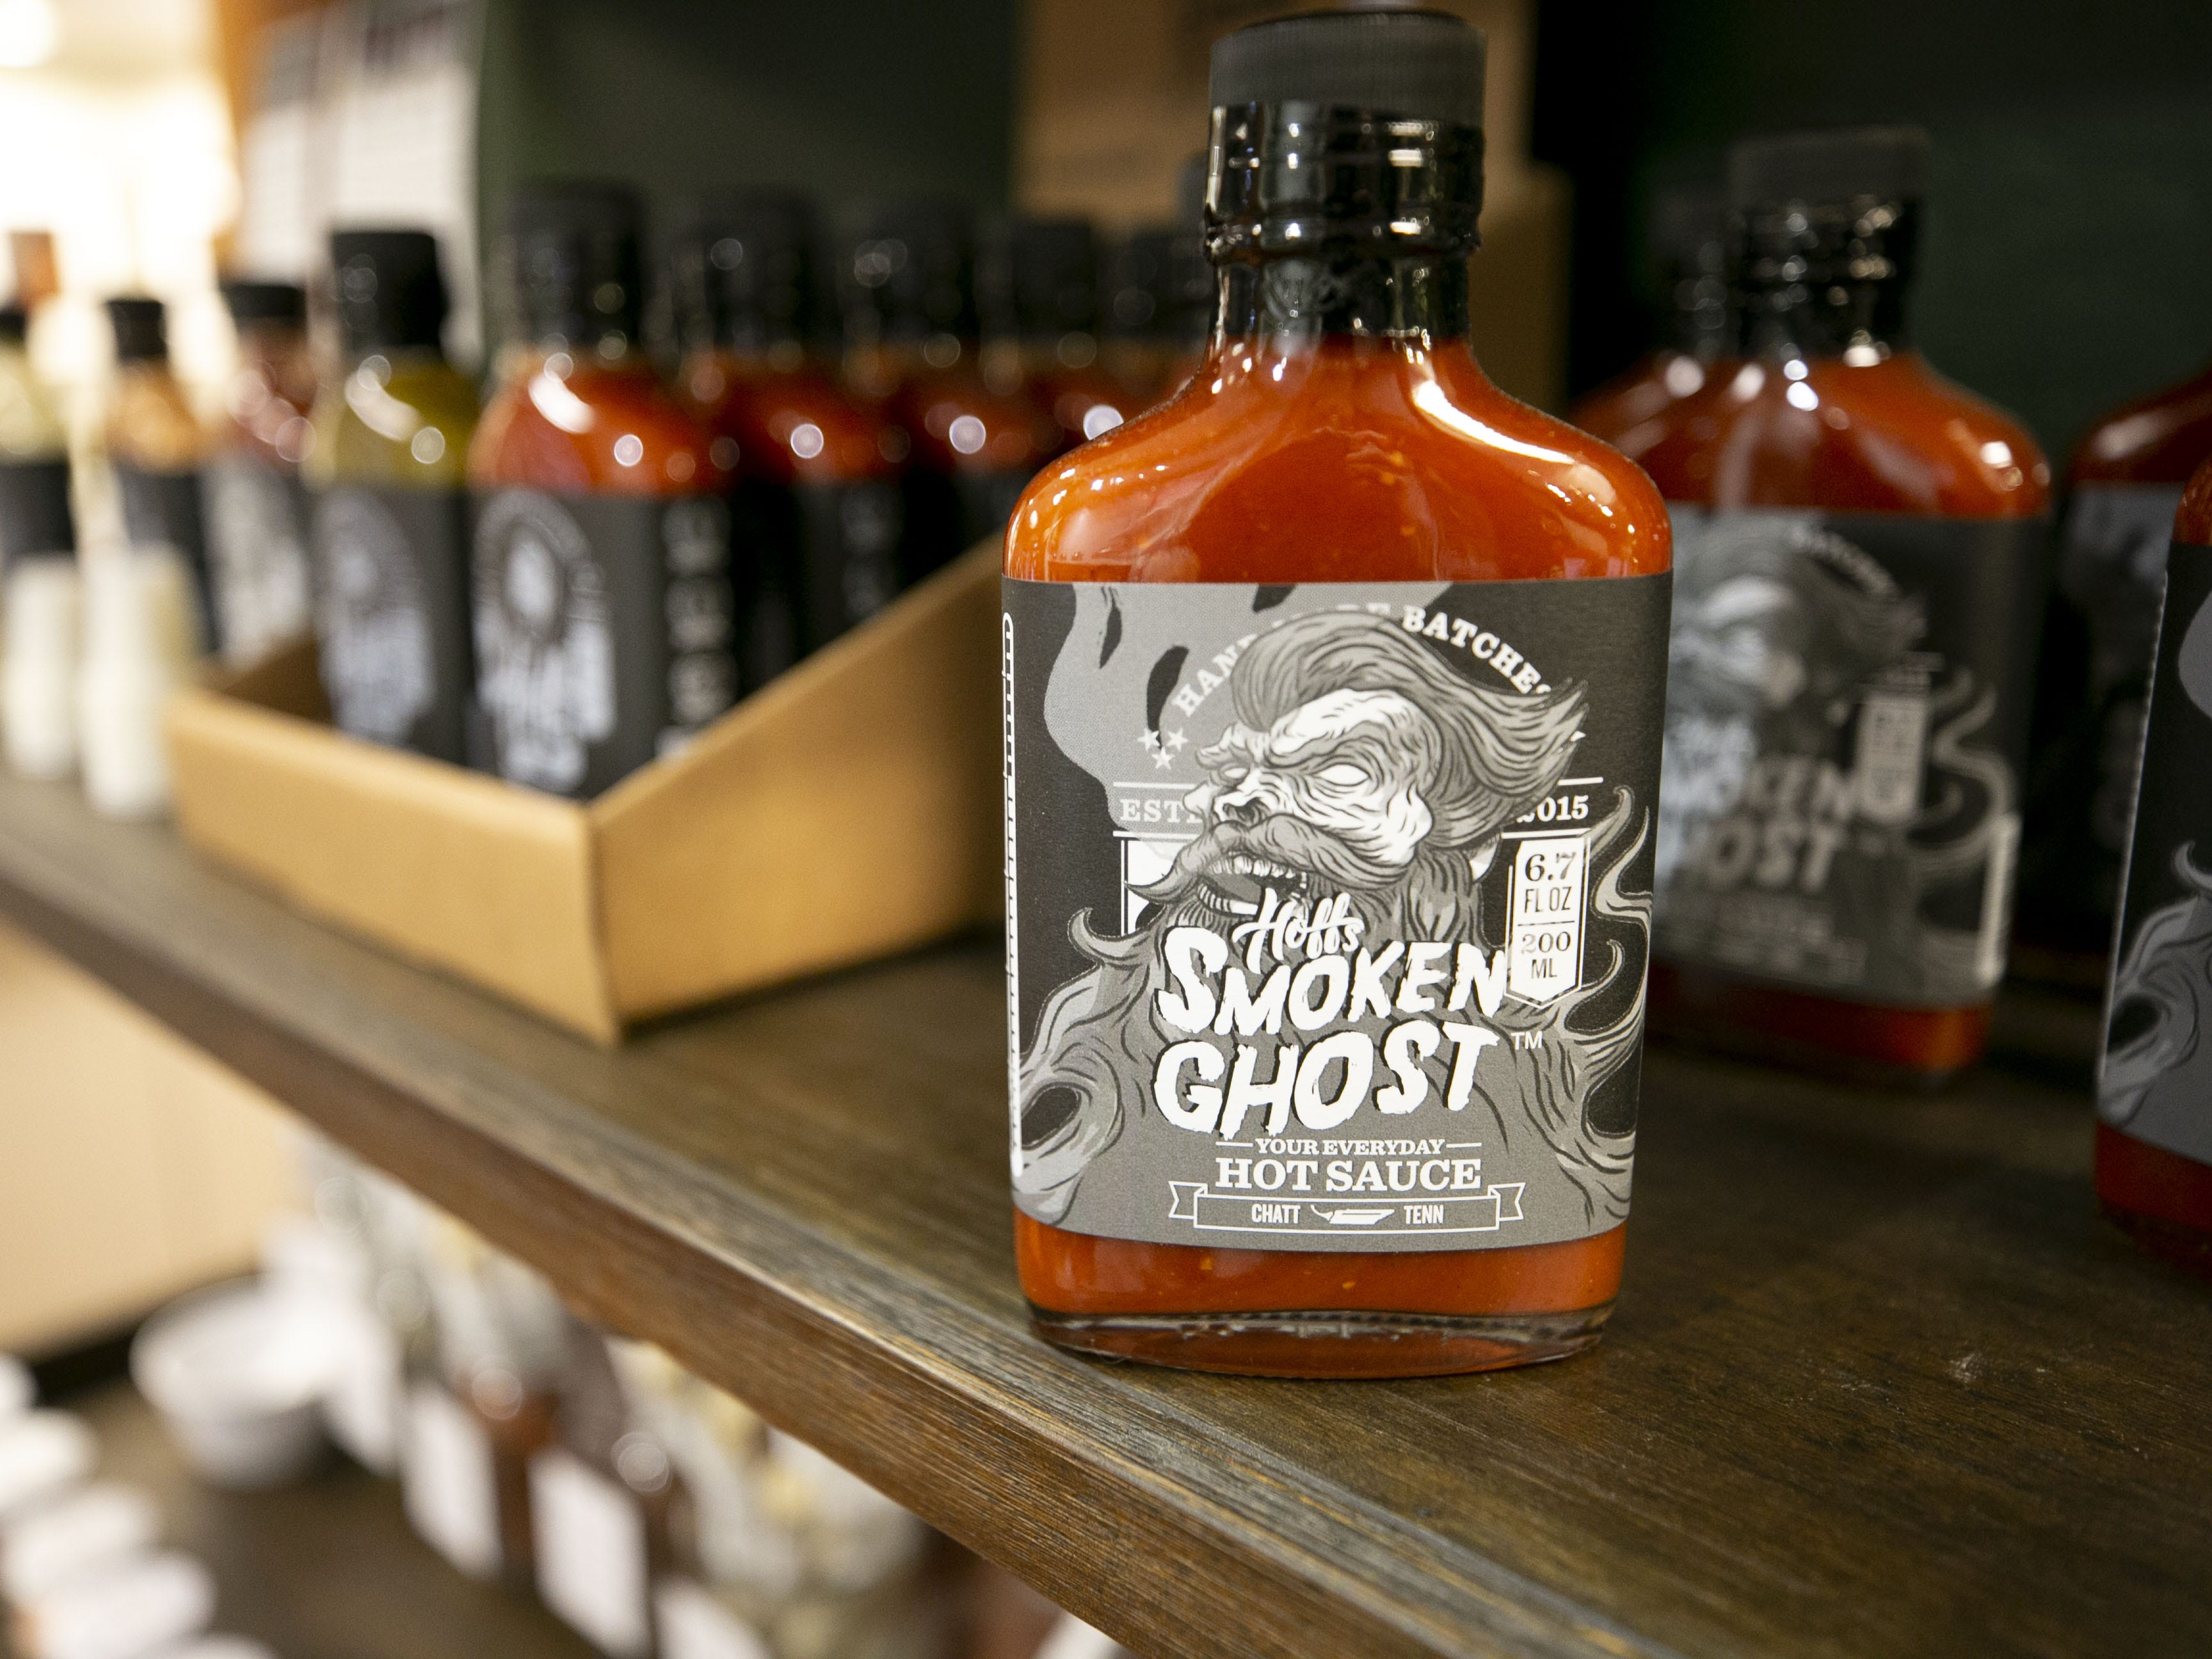 Hoff's Smoken Ghost hot sauce at Outrageous Olive Oils & Vinegars in Old Town Scottsdale on Tuesday, Dec. 11, 2018. The shop is owned by former child actor, Frankie Muniz and his fiance Paige Price.